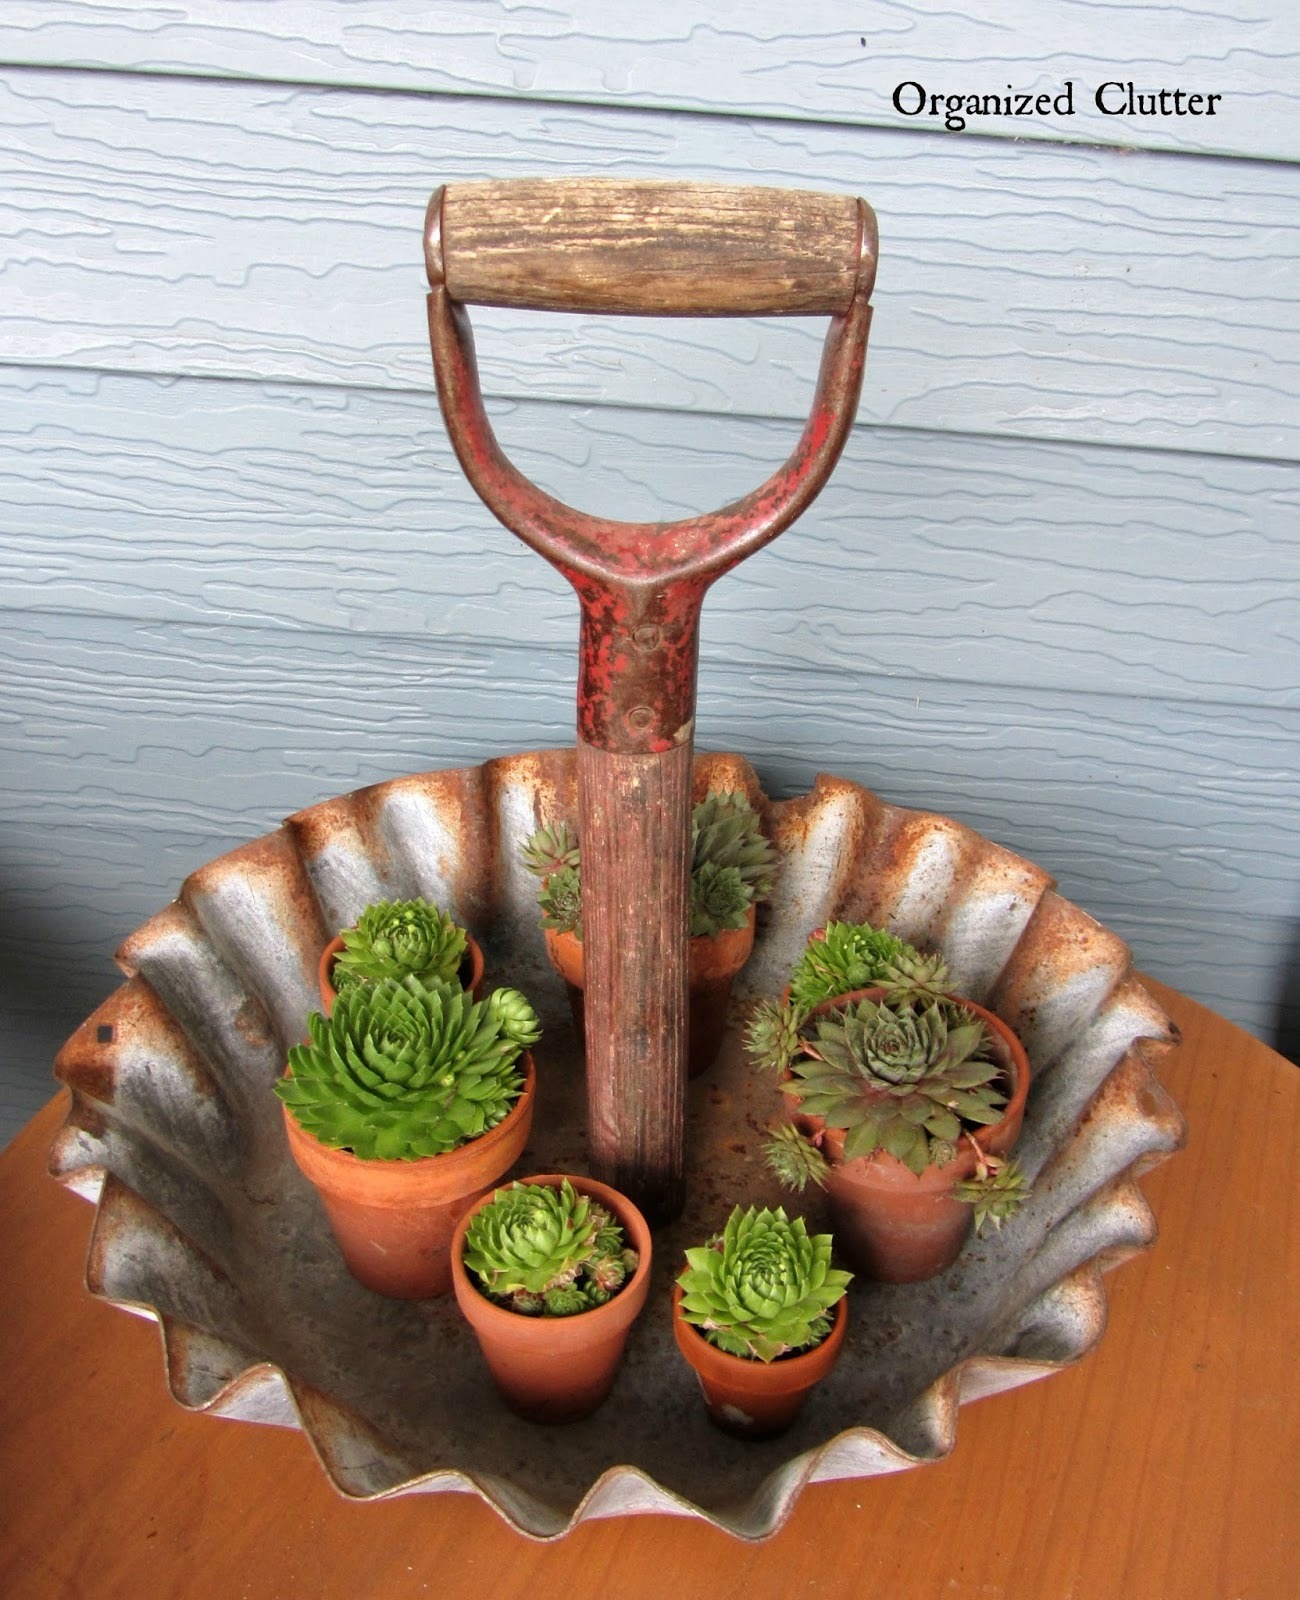 Shovel Handle Display Tray www.organizedclutterqueen.blogspot.com